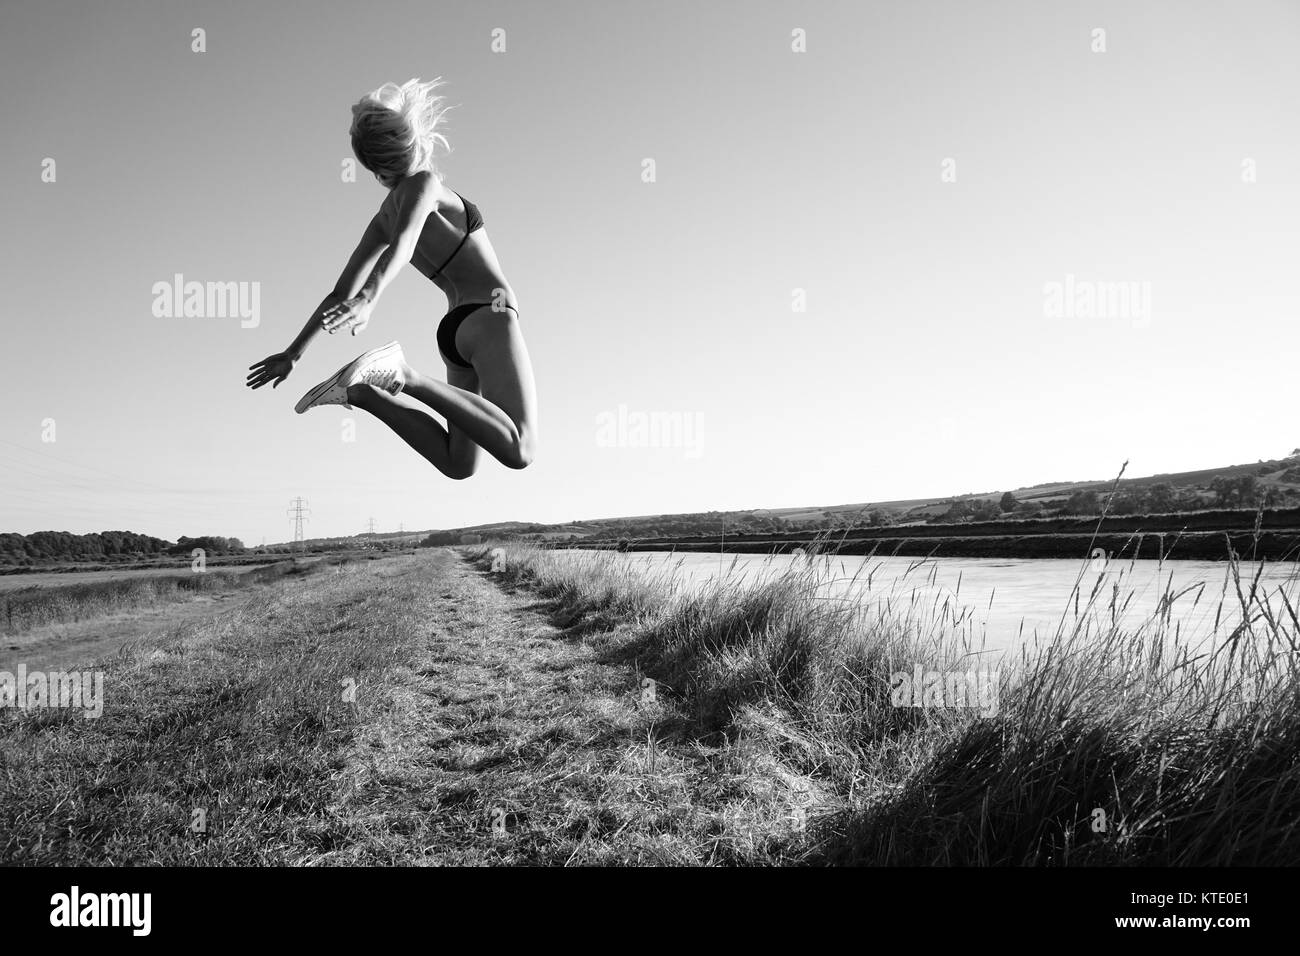 A young woman in bikini and running shoes jumps in the air - Stock Image